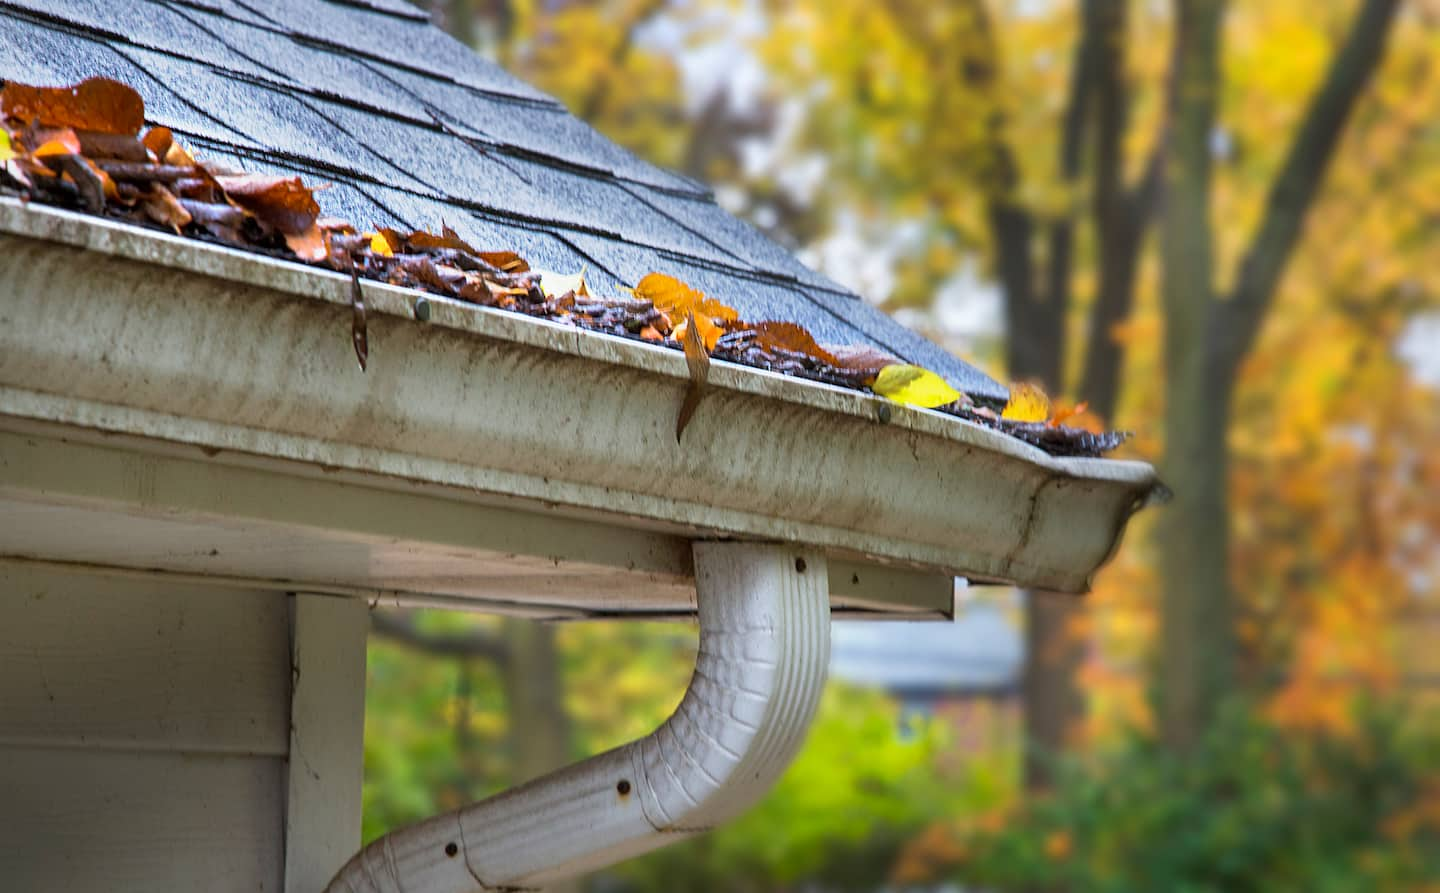 How much to charge for gutter installation - Old Gutters With Leaves Photo By Frank Espich